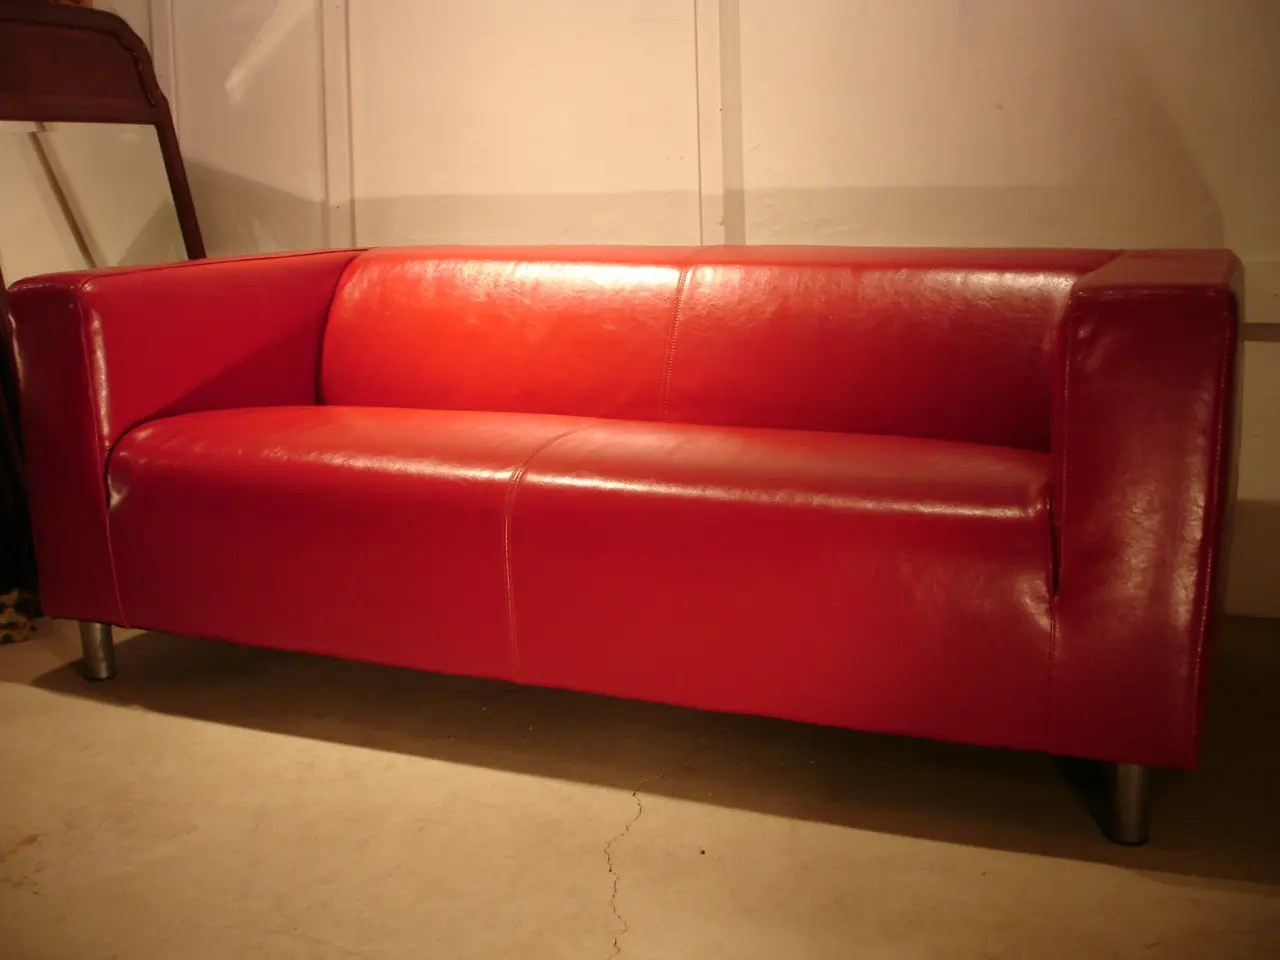 Sofa Klippan How To Fix My Leather Klippan Sofa Will Replacement